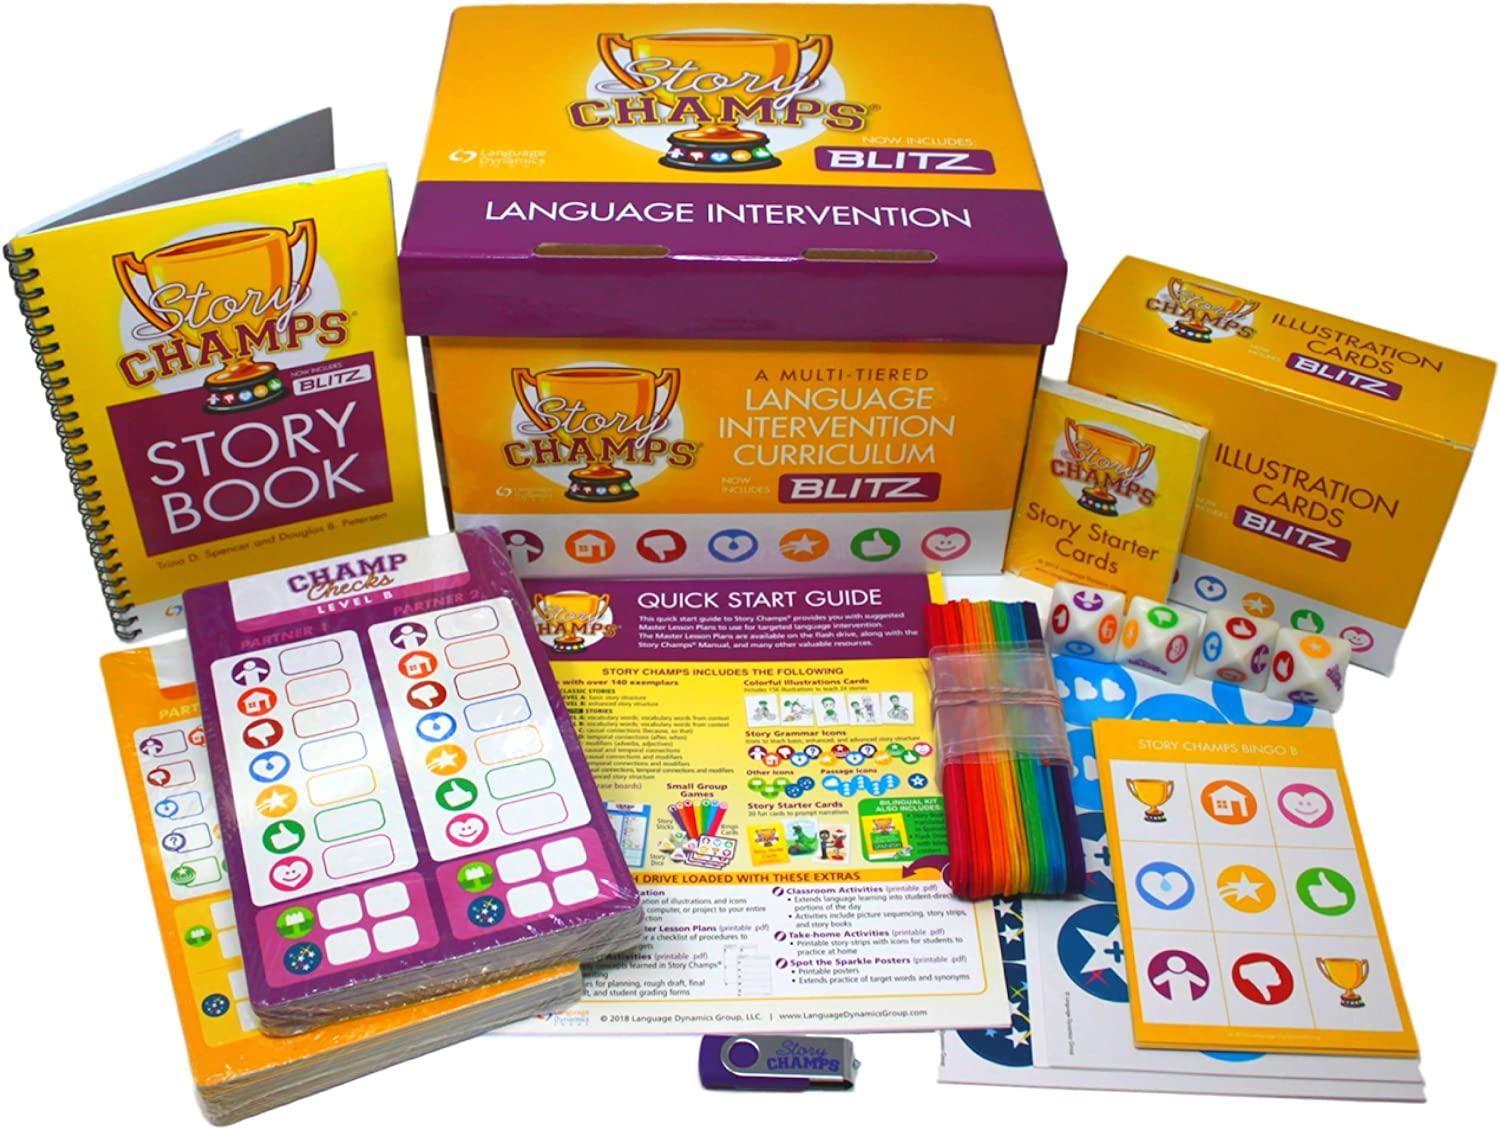 Amazon Com Story Champs 2 0 Materials For Speech Writing Development Reading Comprehension Language Assessment Intervention For Toddler School Age Esl Special Education With Curriculum Workbook Games Strategies Toolkit Office Products